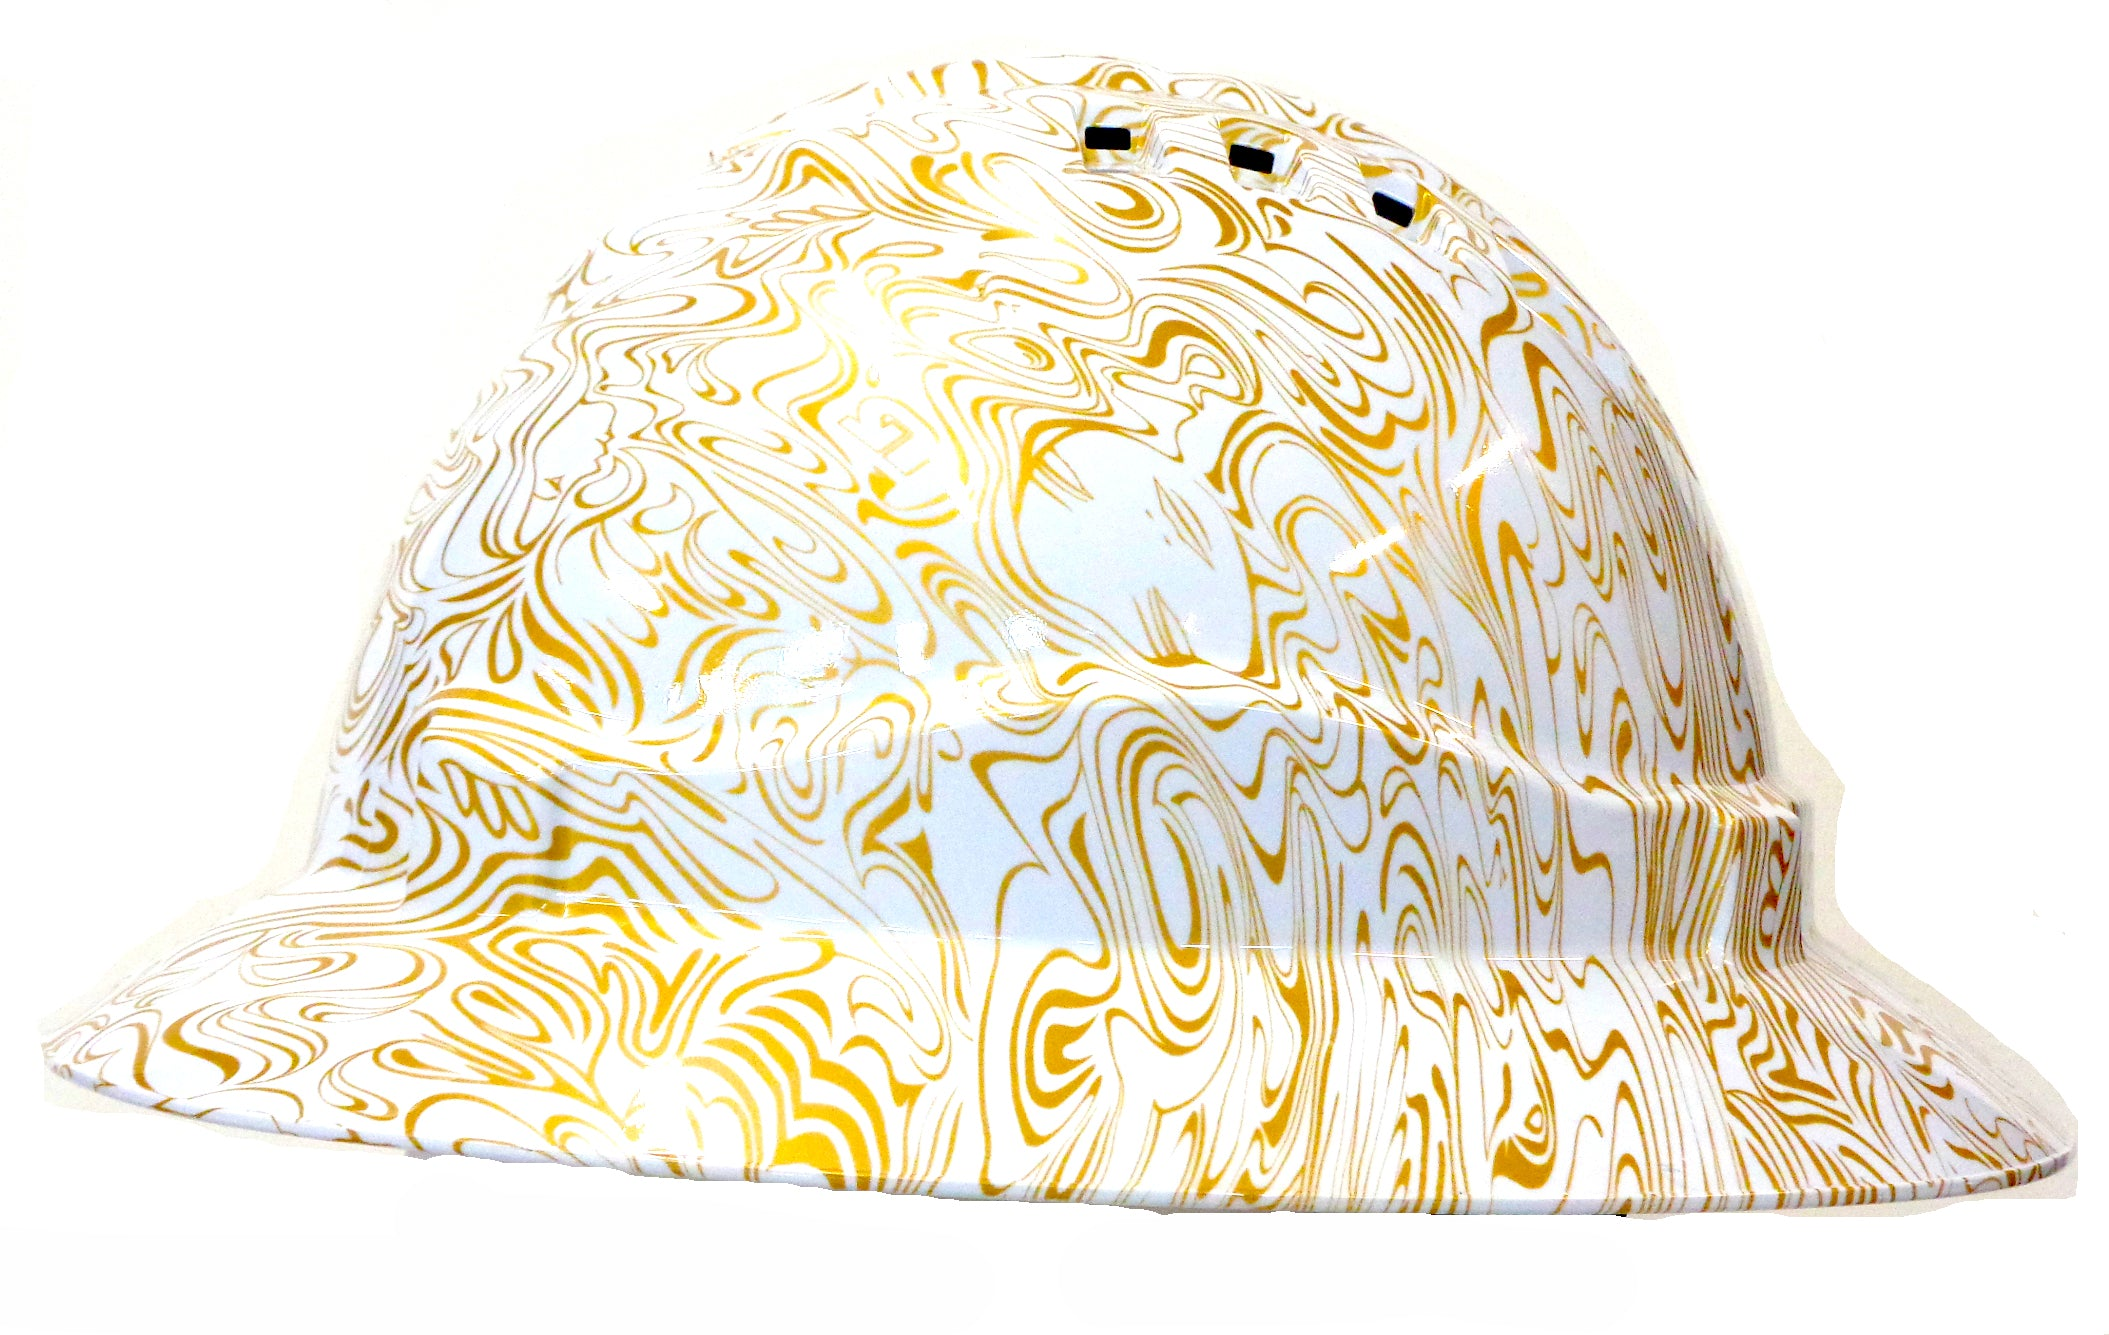 Full Brim Hard Hat - Gold Swirl; Cool Hard Hats NZ